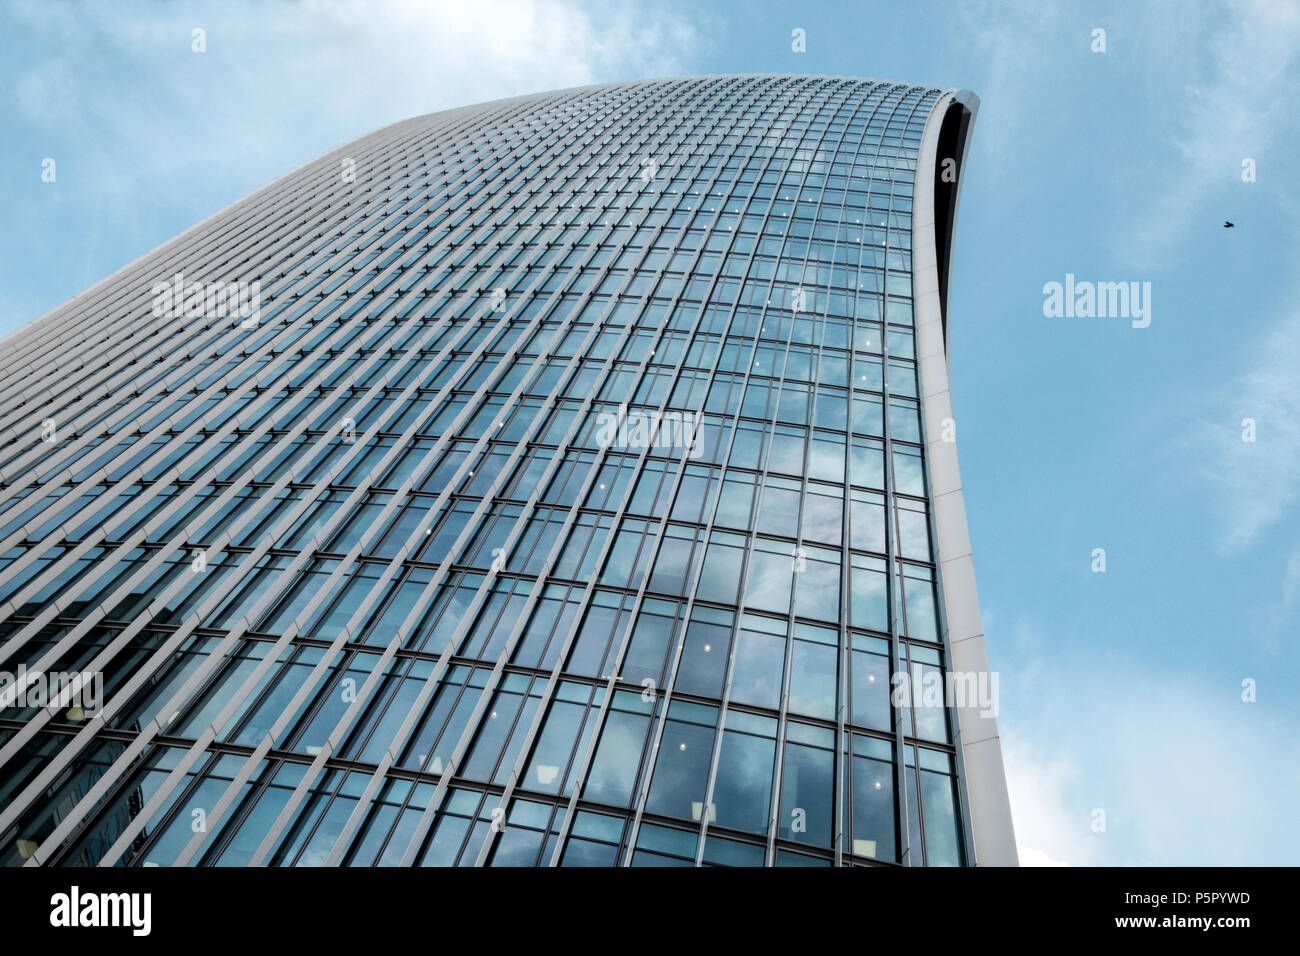 The Walkie-Talkie skyscraper at 20 Fenchurch Street in the City of London, England, UK. Horizontal, copy space, blue sky. - Stock Image